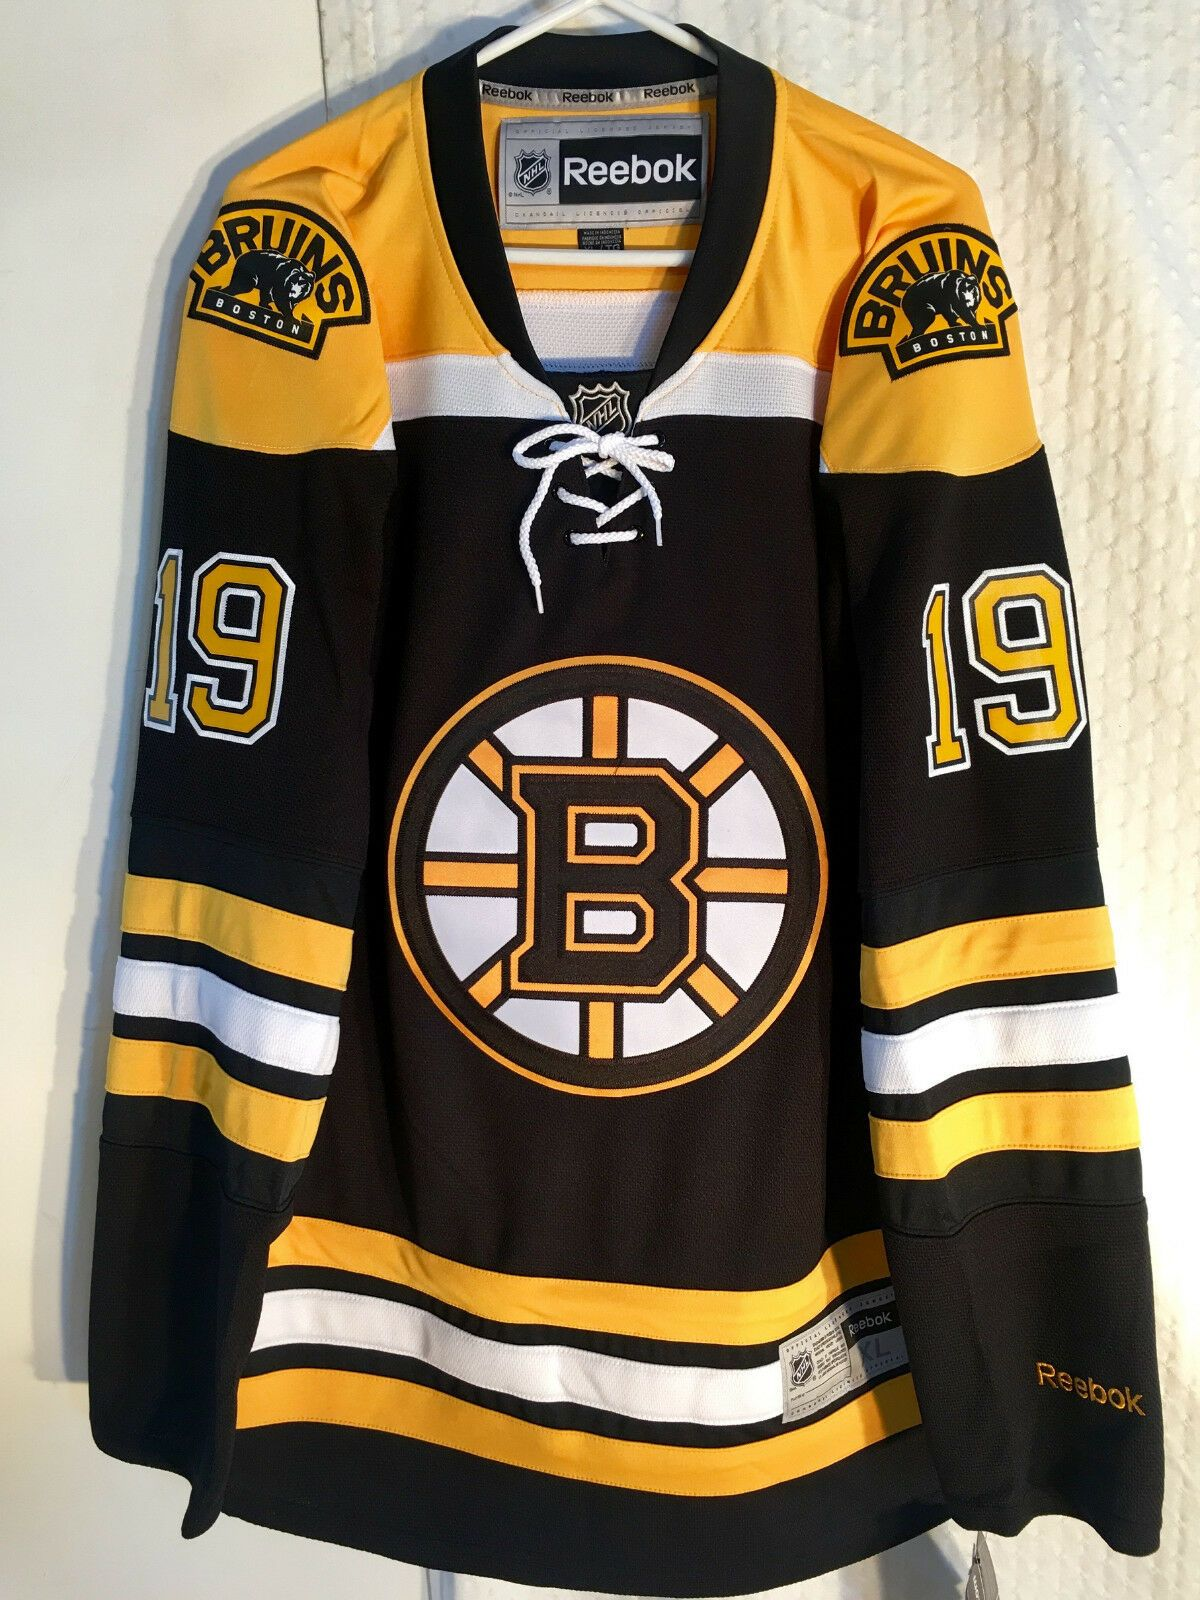 premium selection 49008 a5c4d Details about Reebok Premier NHL Jersey Boston Bruins Tyler ...